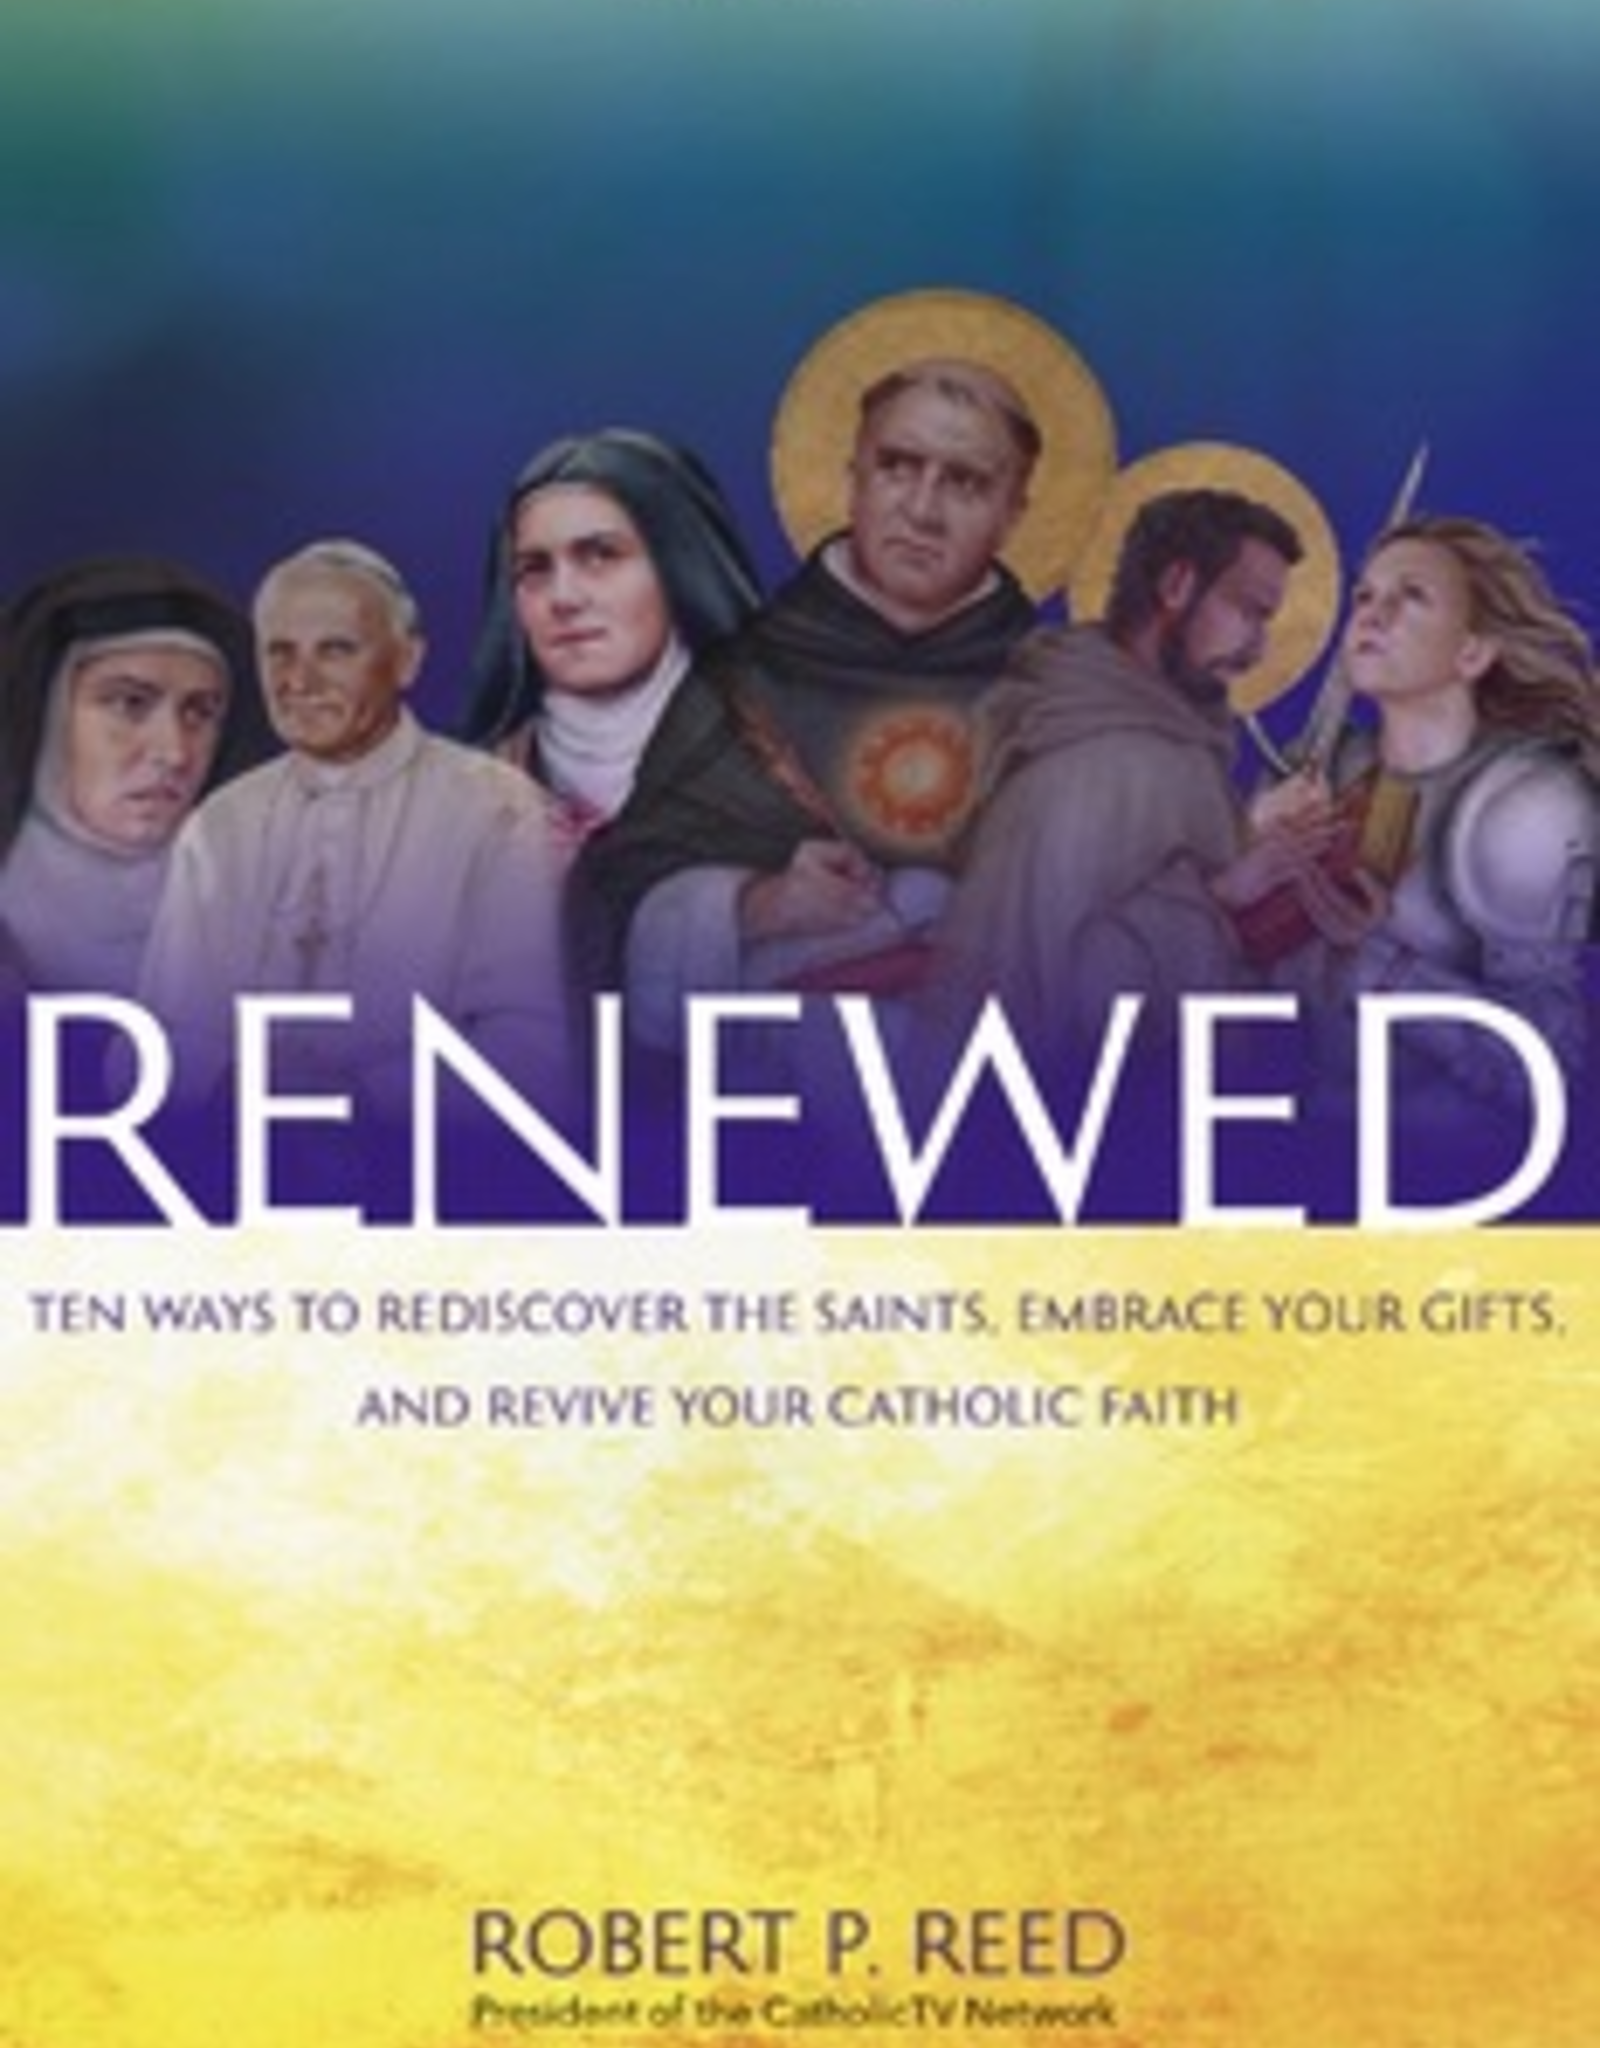 Ave Maria Press Renewed:  Ten Ways to Discover the Saints, Embrace Your Gifts and Revive Your Catholic Faith, by Robert Reed (paperback)